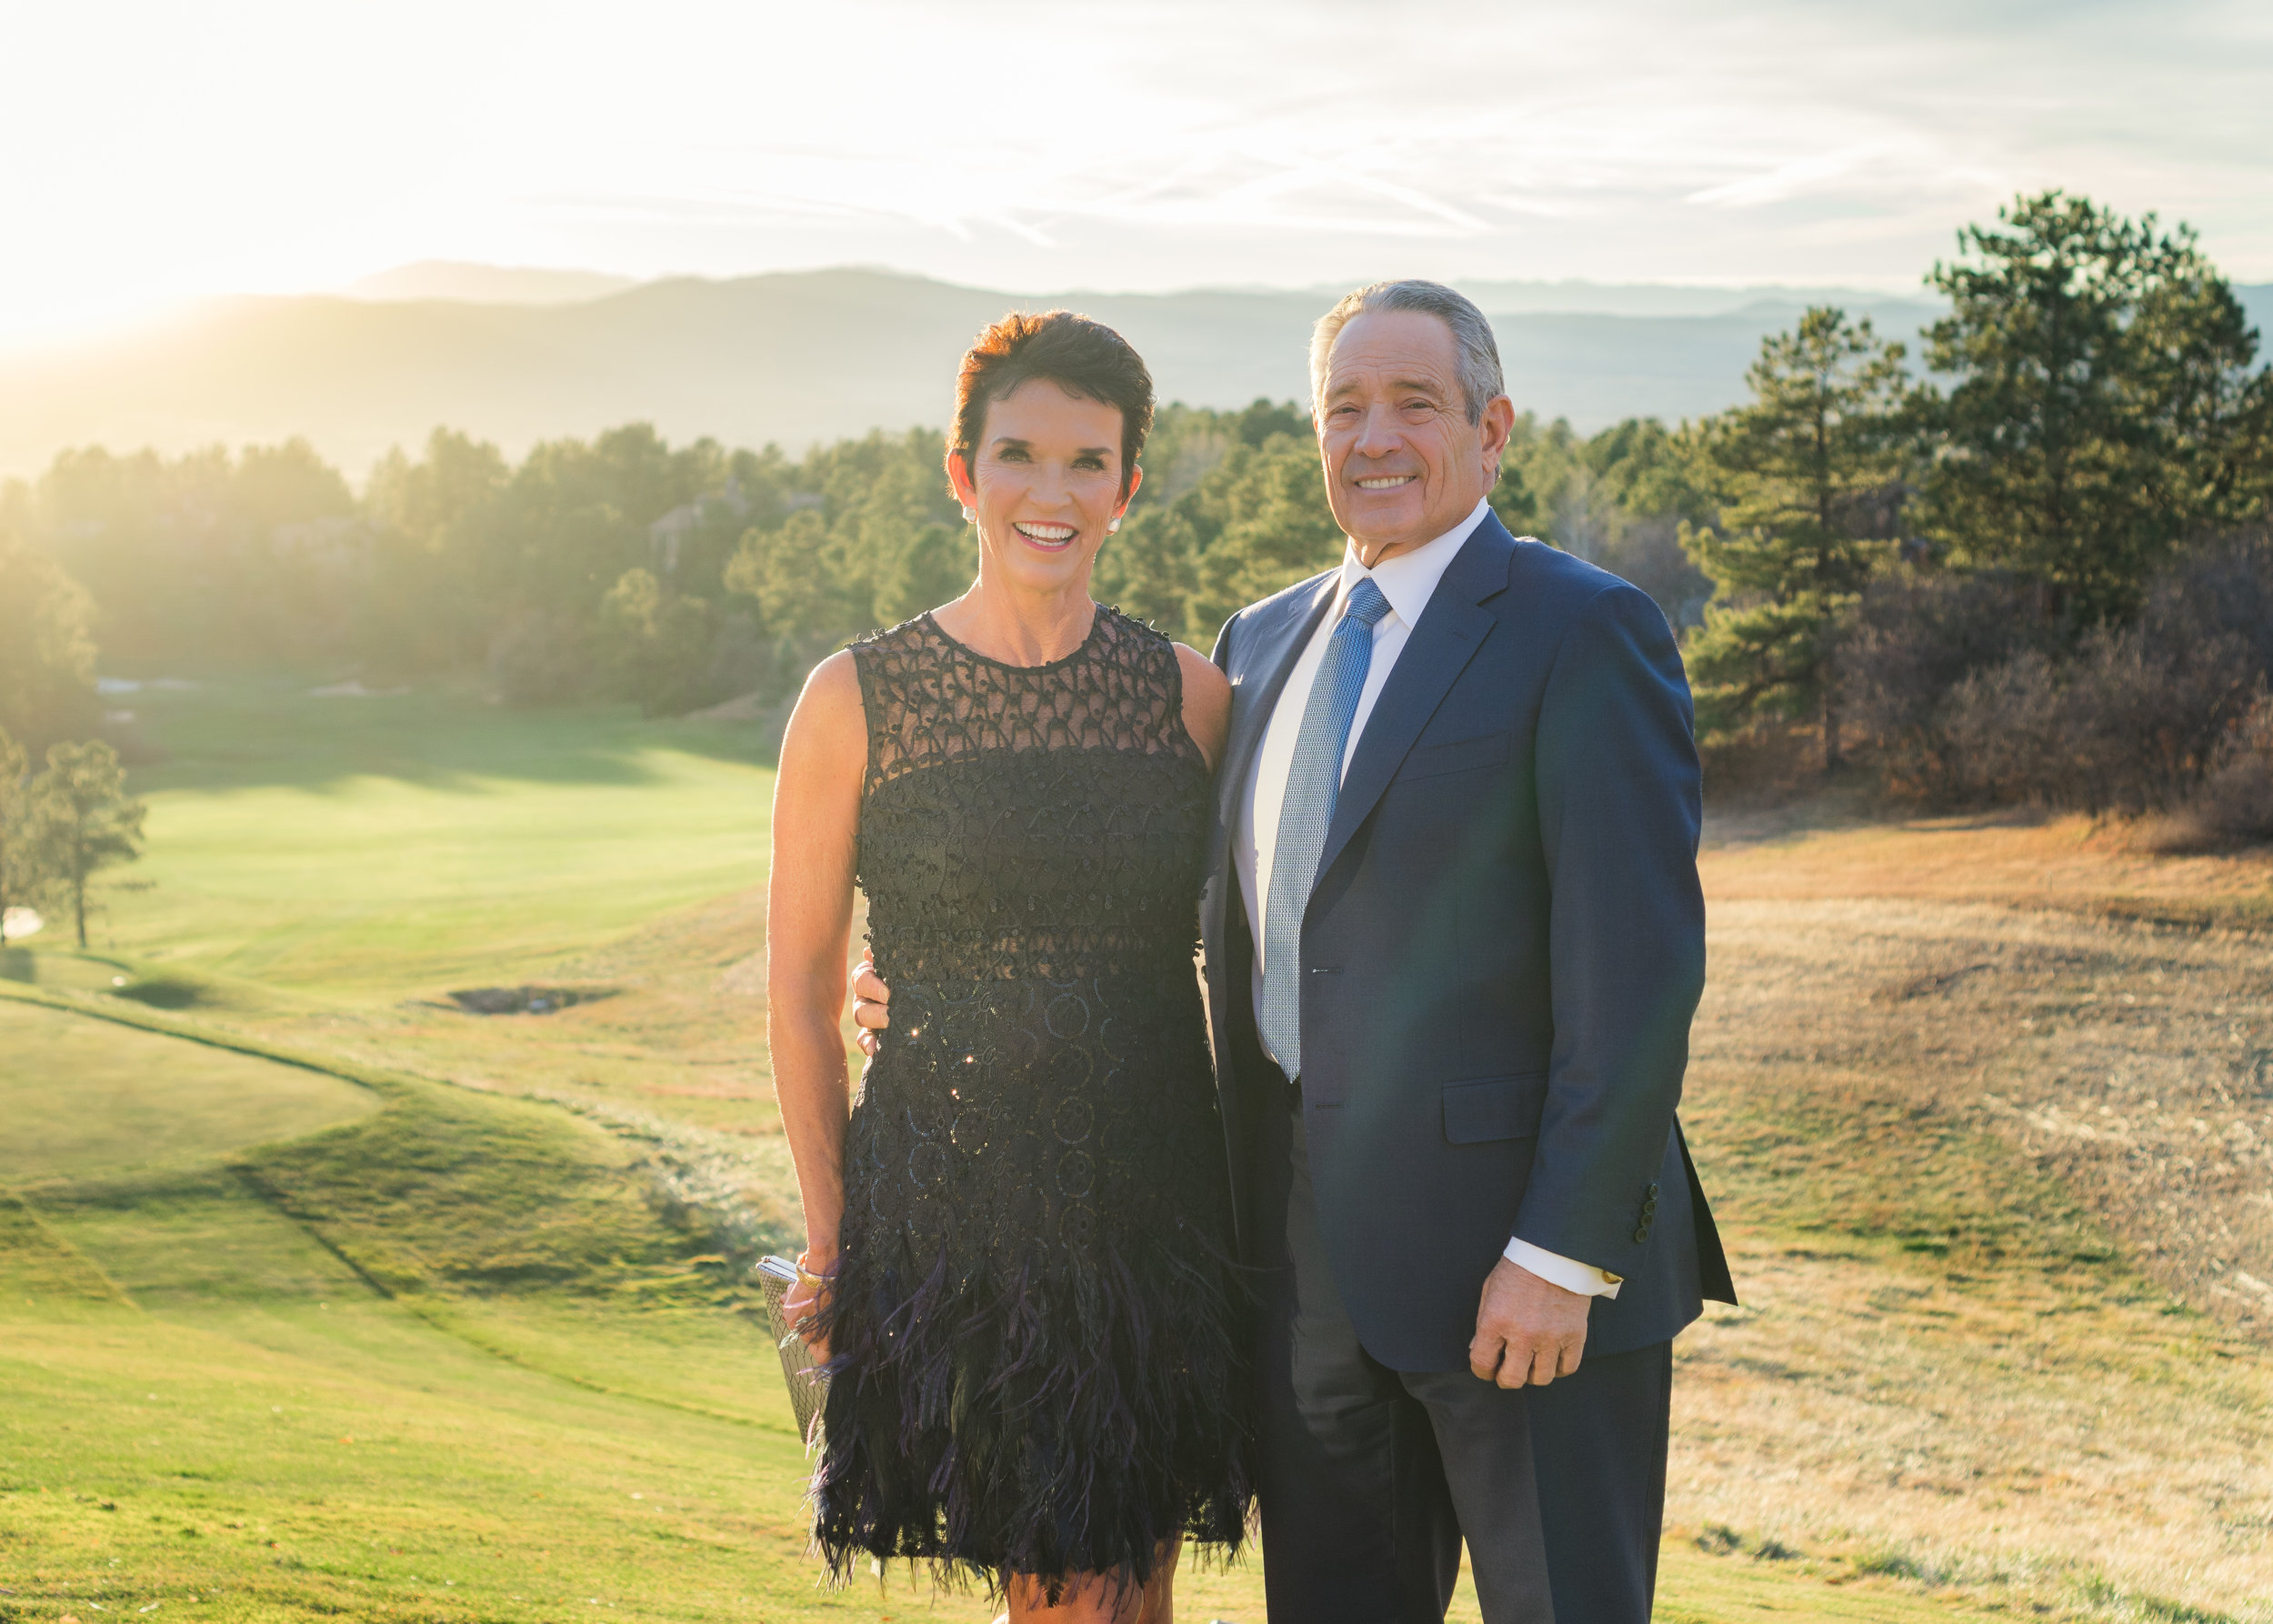 Joanie & Jim - Castle Pines.jpg